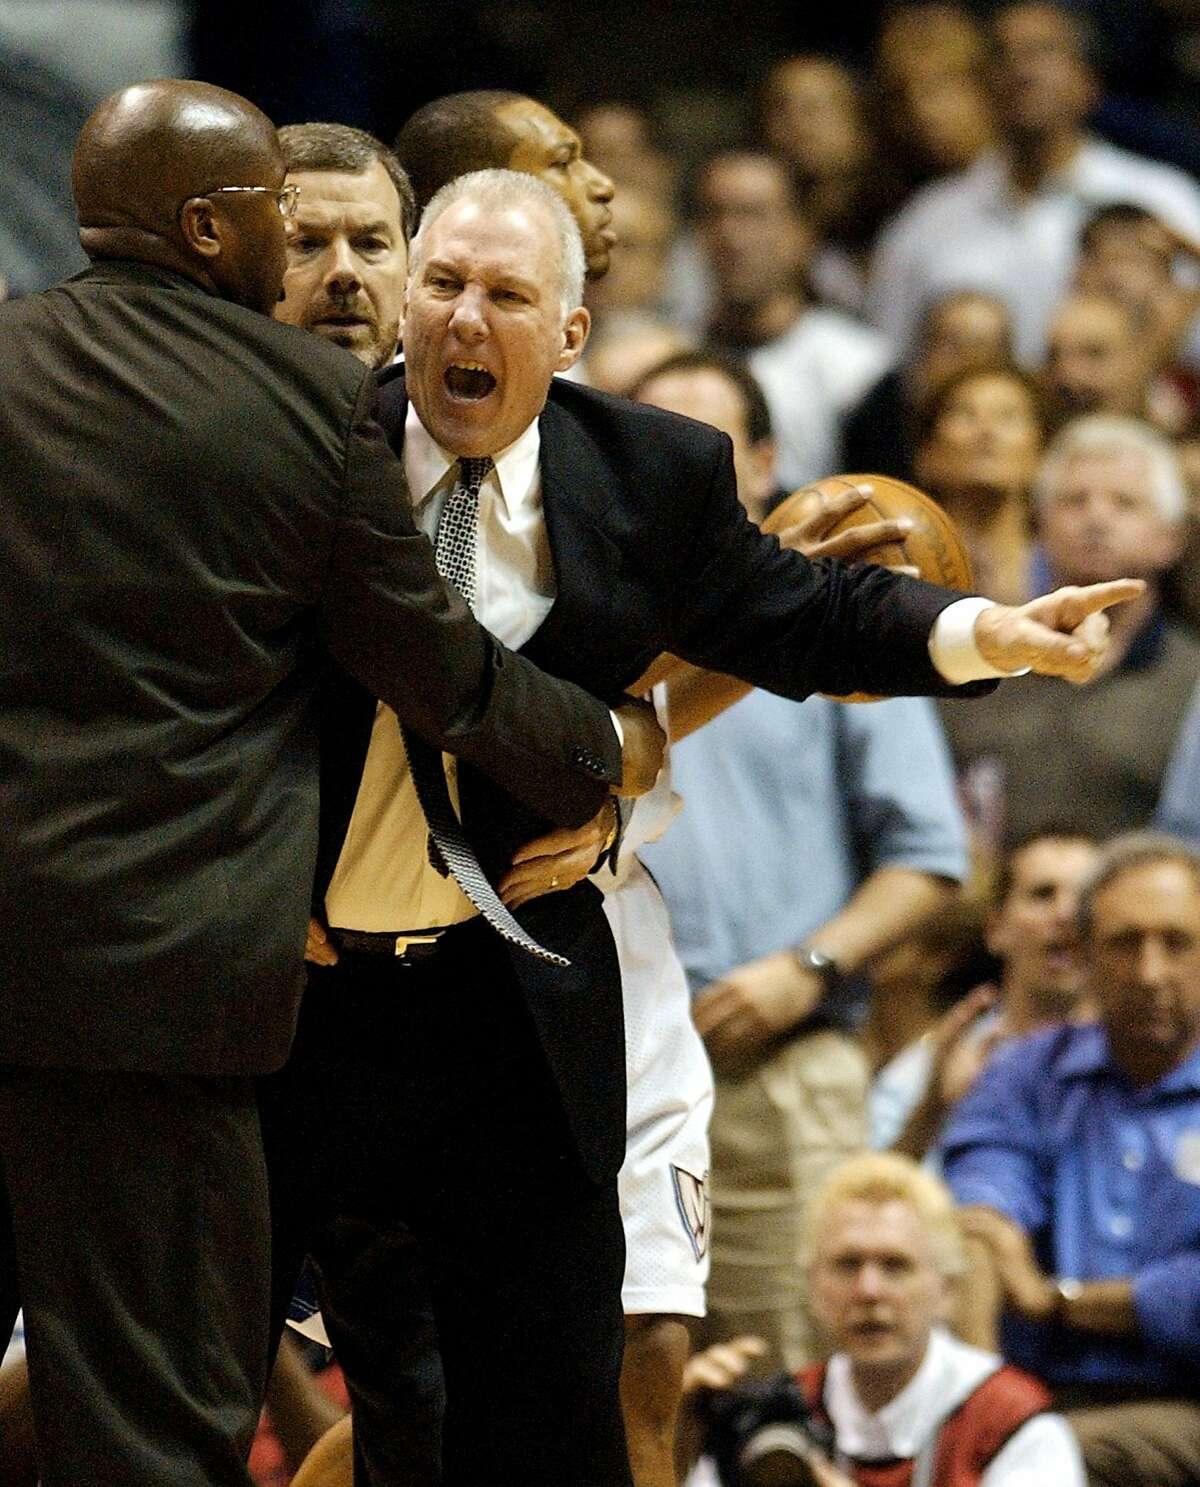 Spurs coach Gregg Popovich is restrained by assistant coach Mike Brown, left and P.J.Carlesimo during third quarter action of game four NBA Finals at the Continental Airlines Arena in New Jersey June 11, 2003. (WILLIAM LUTHER/STAFF)